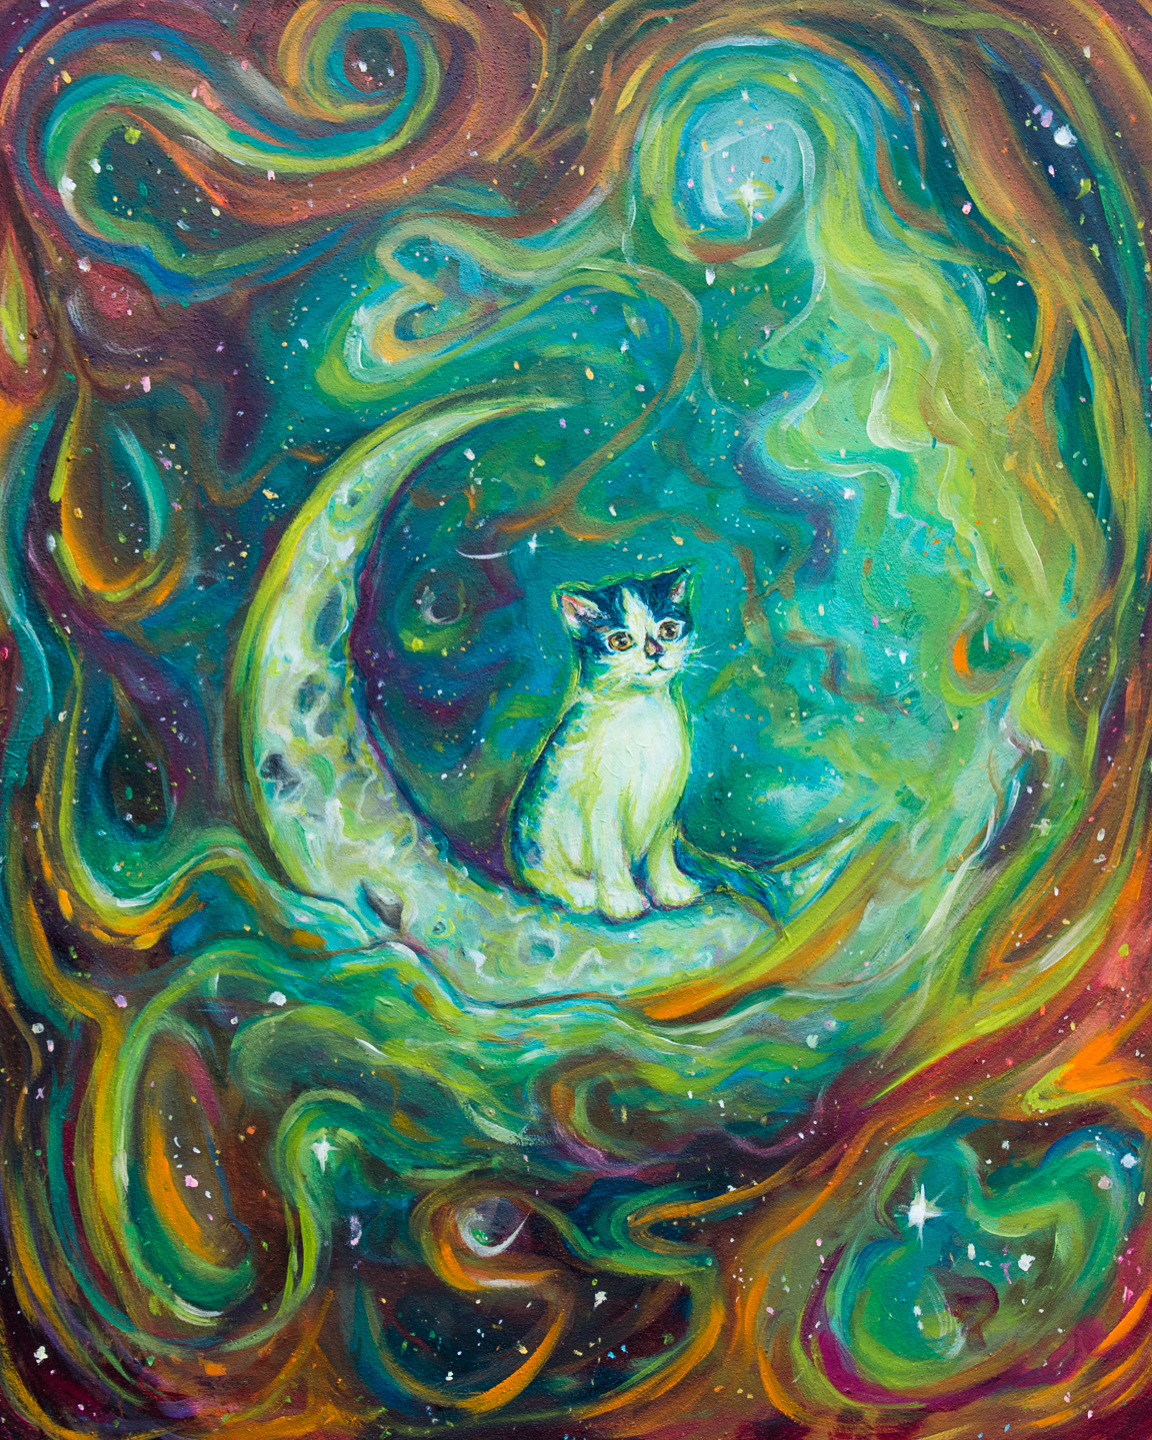 """KITTEN'S COSMOS"" 2017 - OIL ON WOOD PANEL"